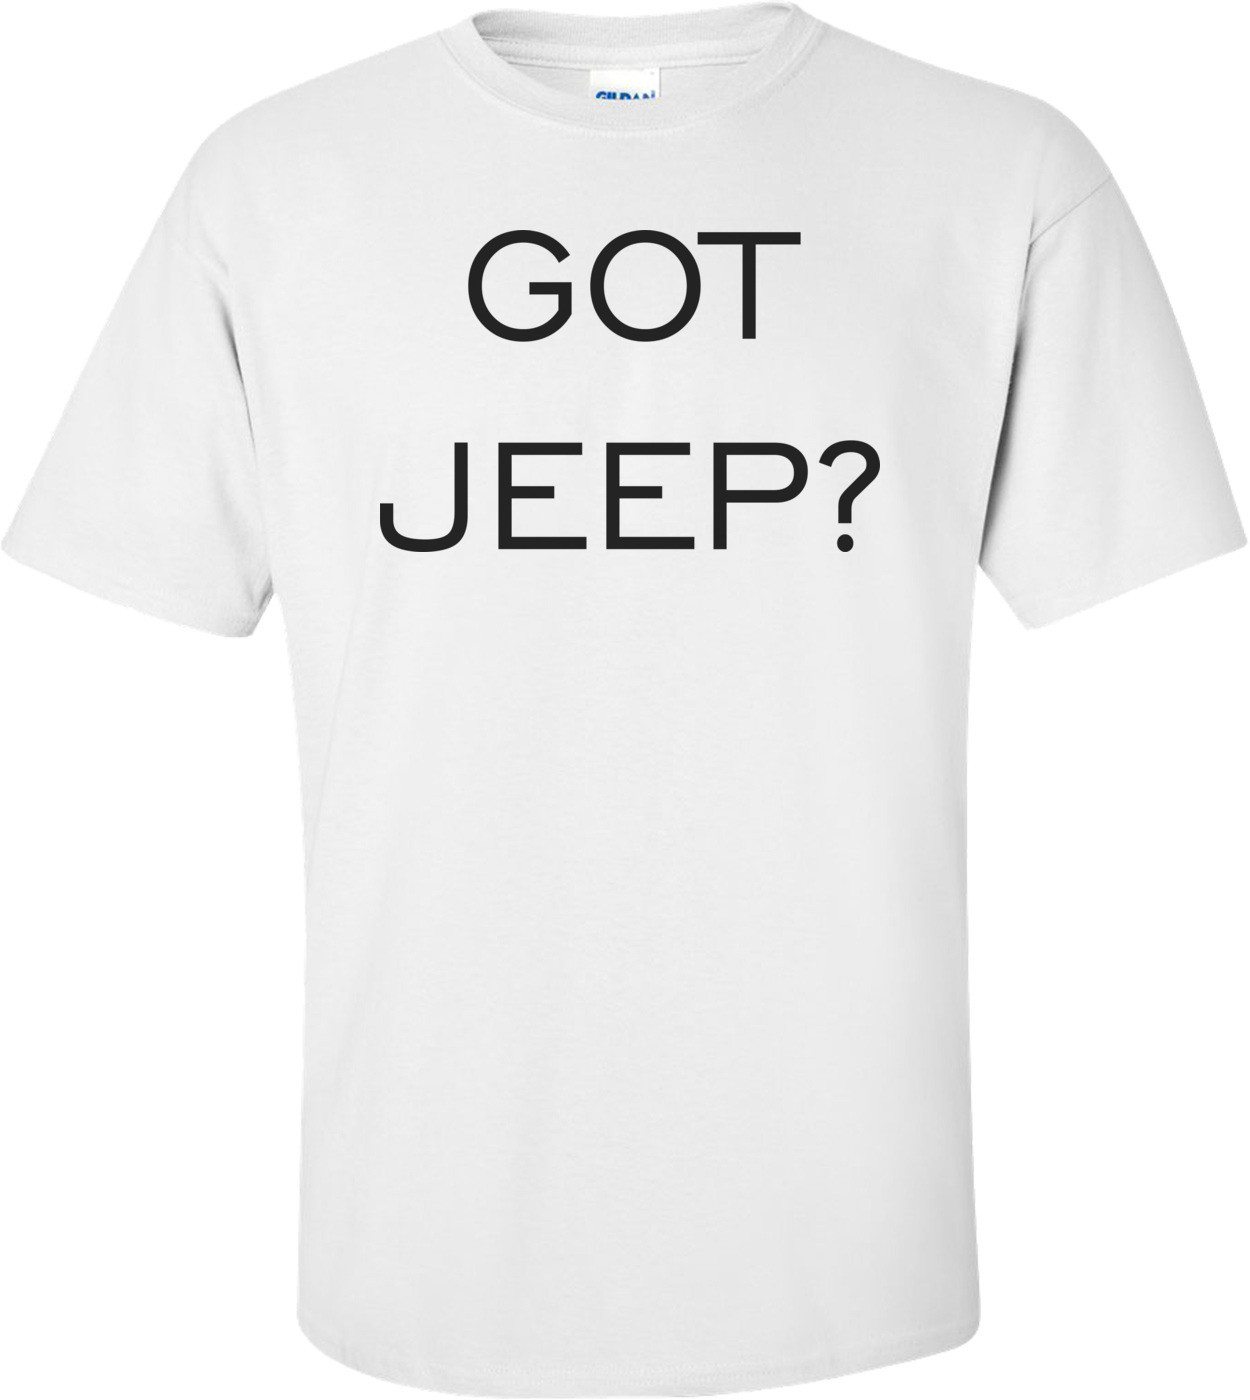 Got Jeep? Shirt